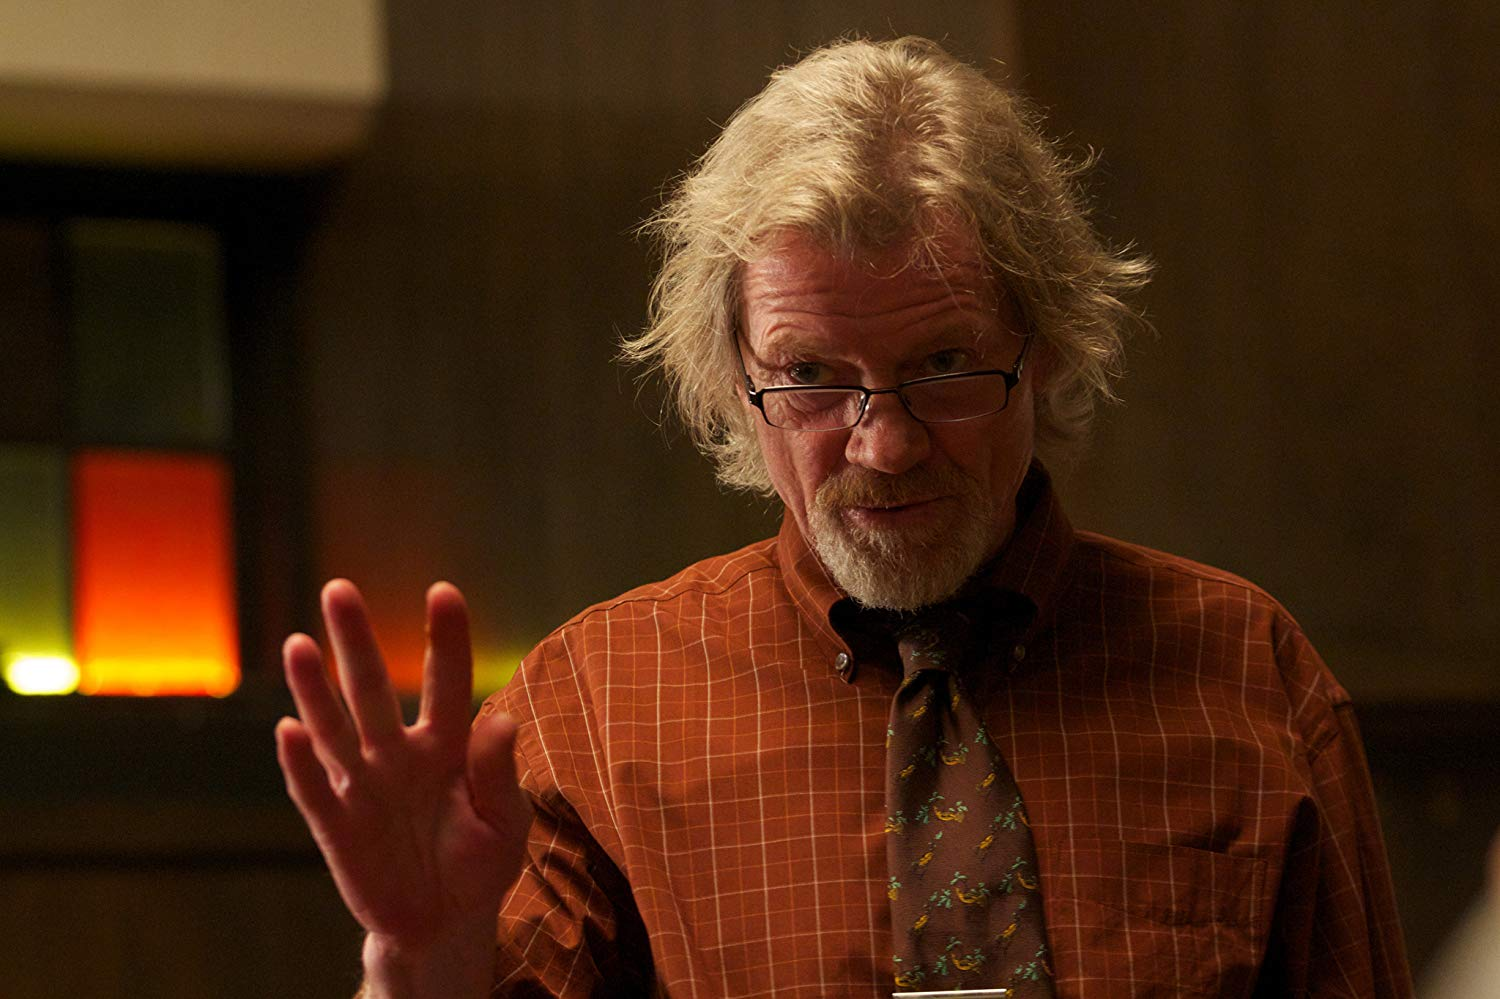 Michael Parks as Abin Cooper in Red State (2011)